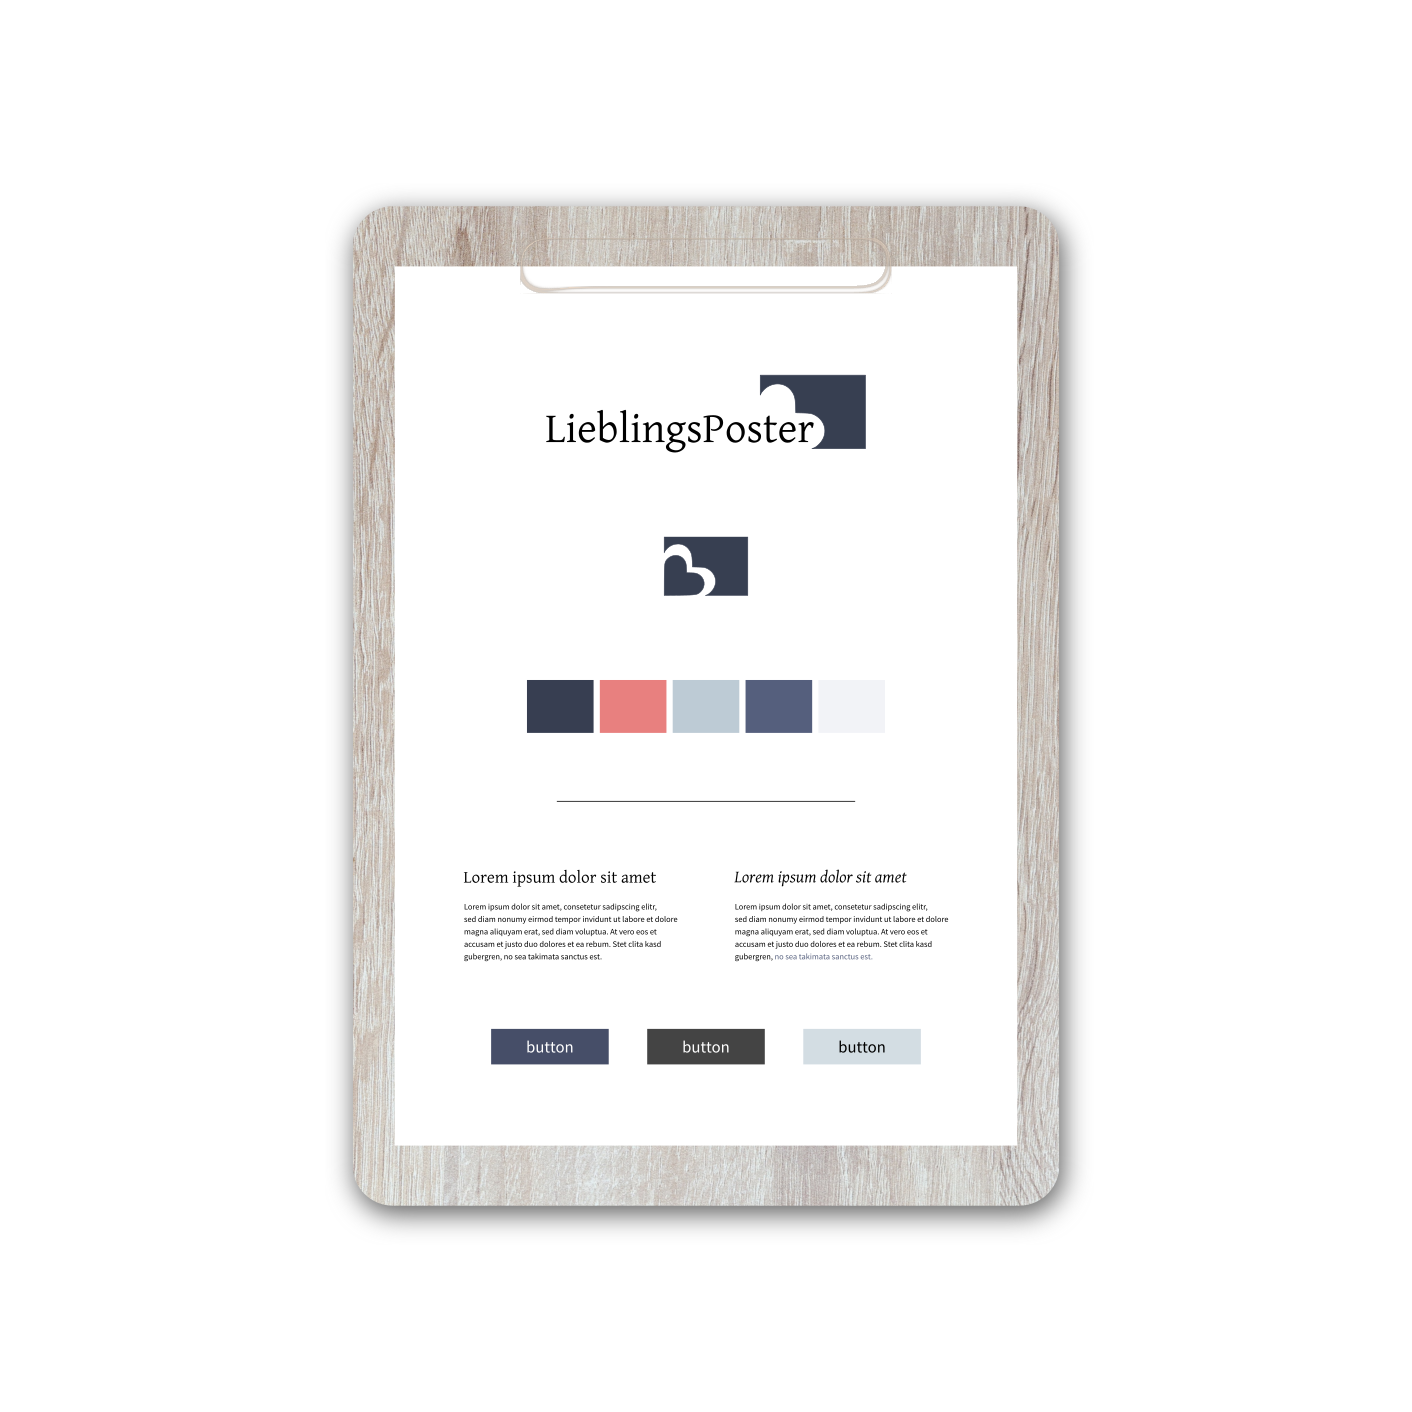 LieblingsPoster | Brand Strategy & Web Design by Red Ruby Sphere